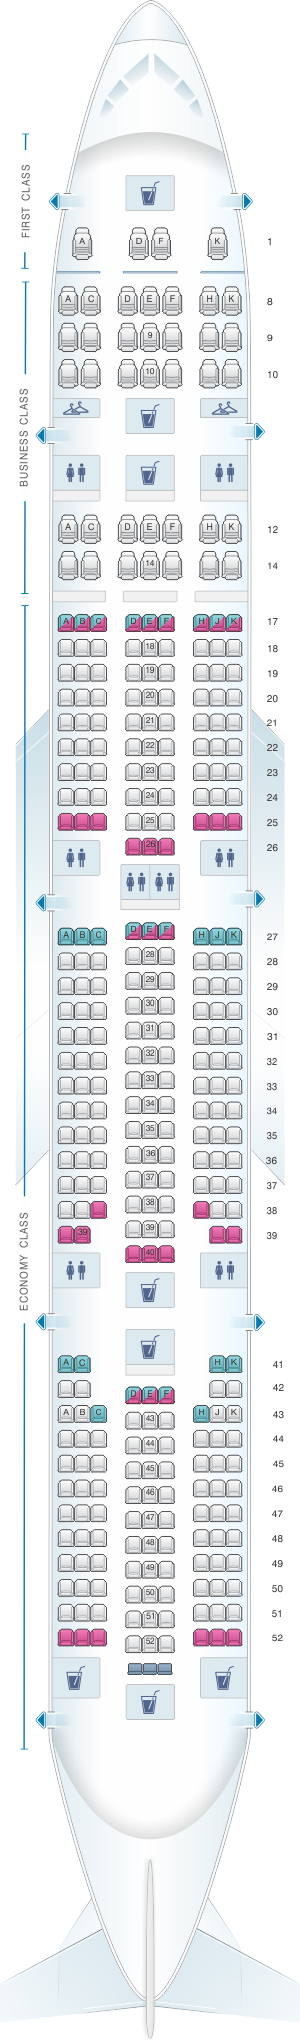 Seat map for Air India Boeing B777 300ER